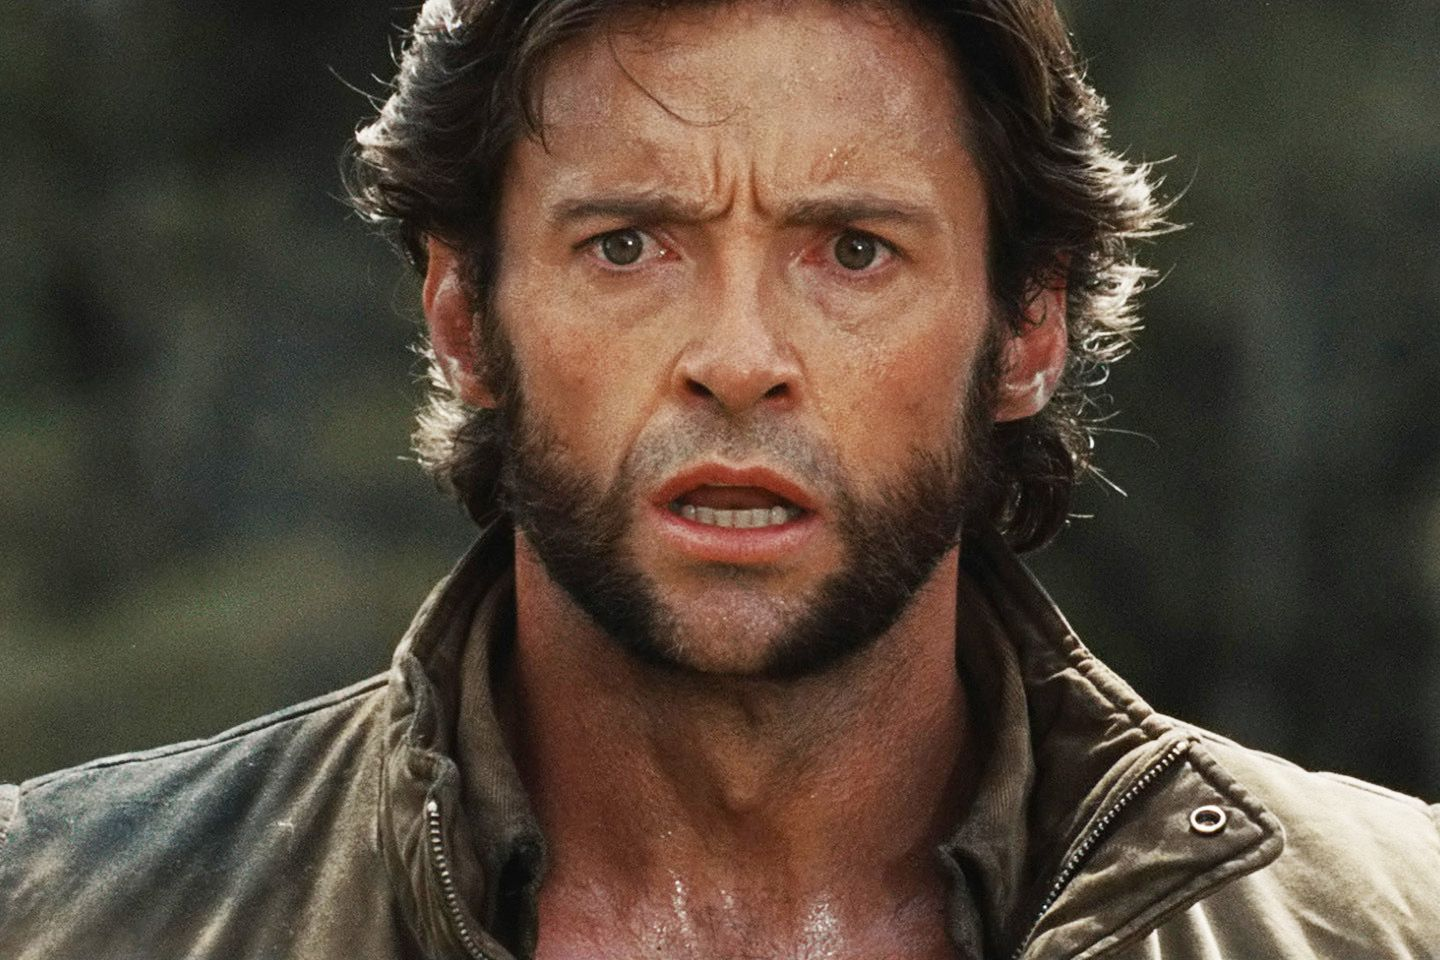 X-Men's Hugh Jackman shares thoughts on MCU recasting Wolverine